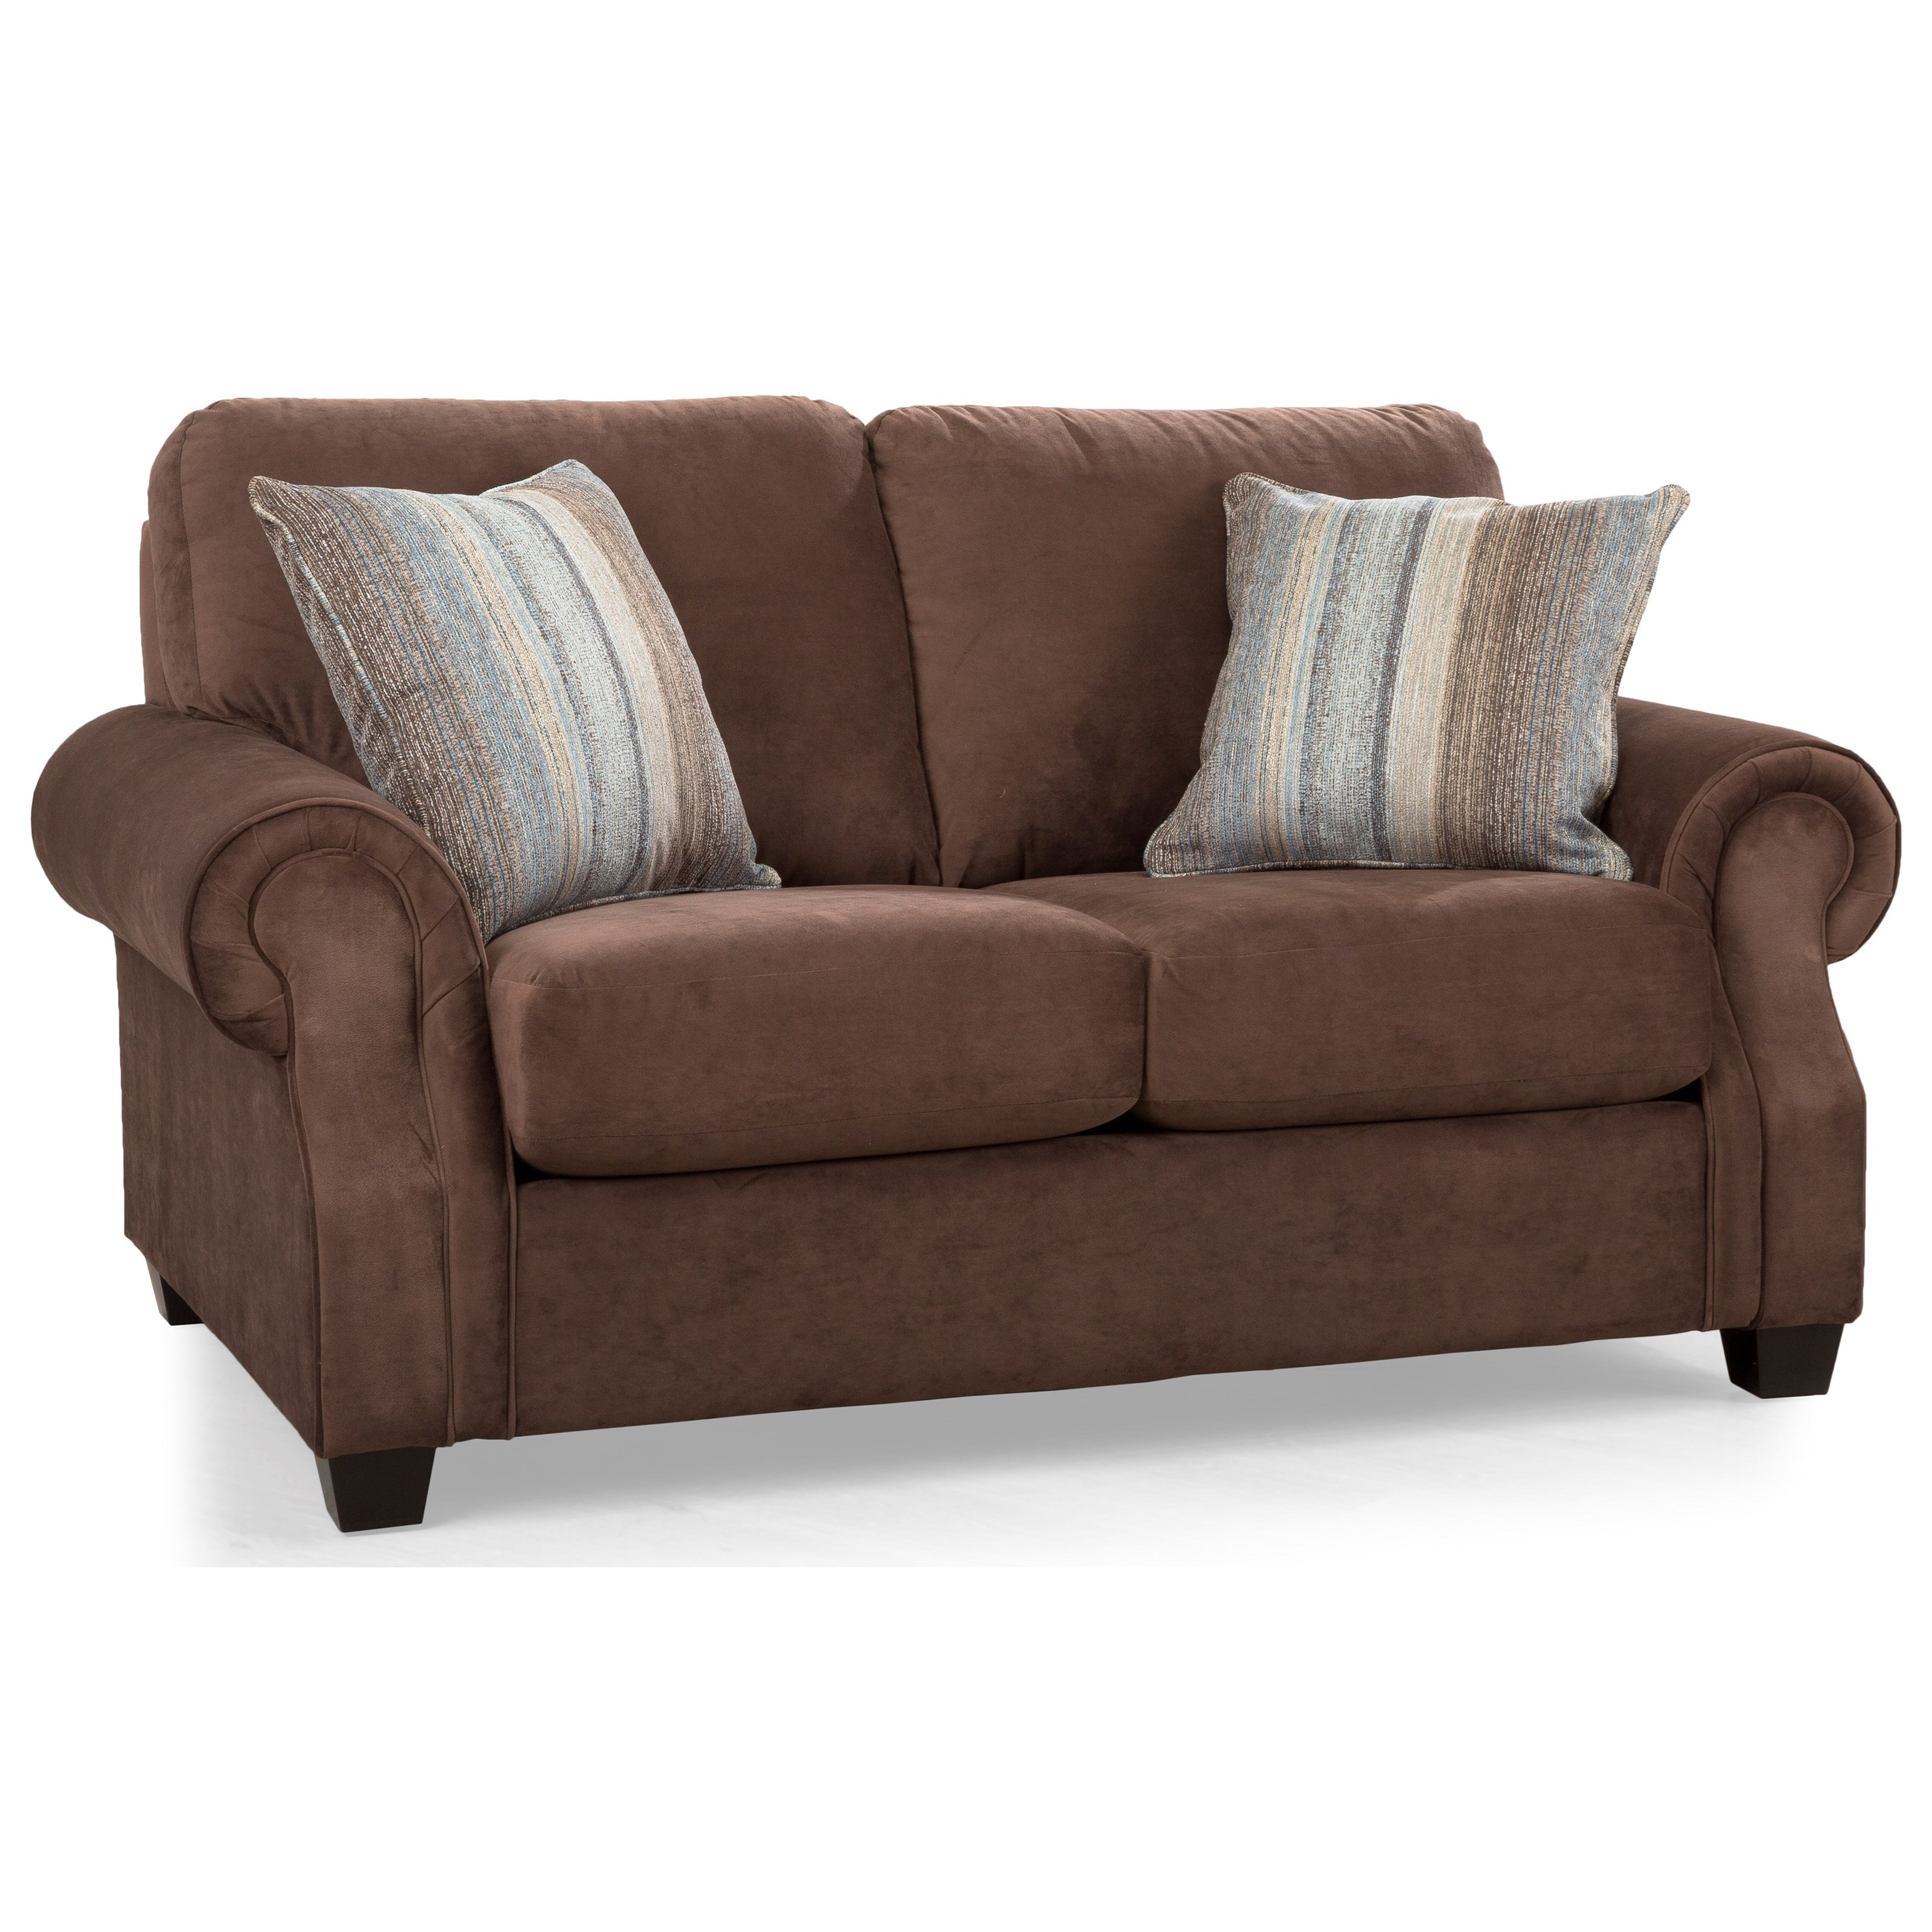 2279 Loveseat by Decor-Rest at Rooms for Less